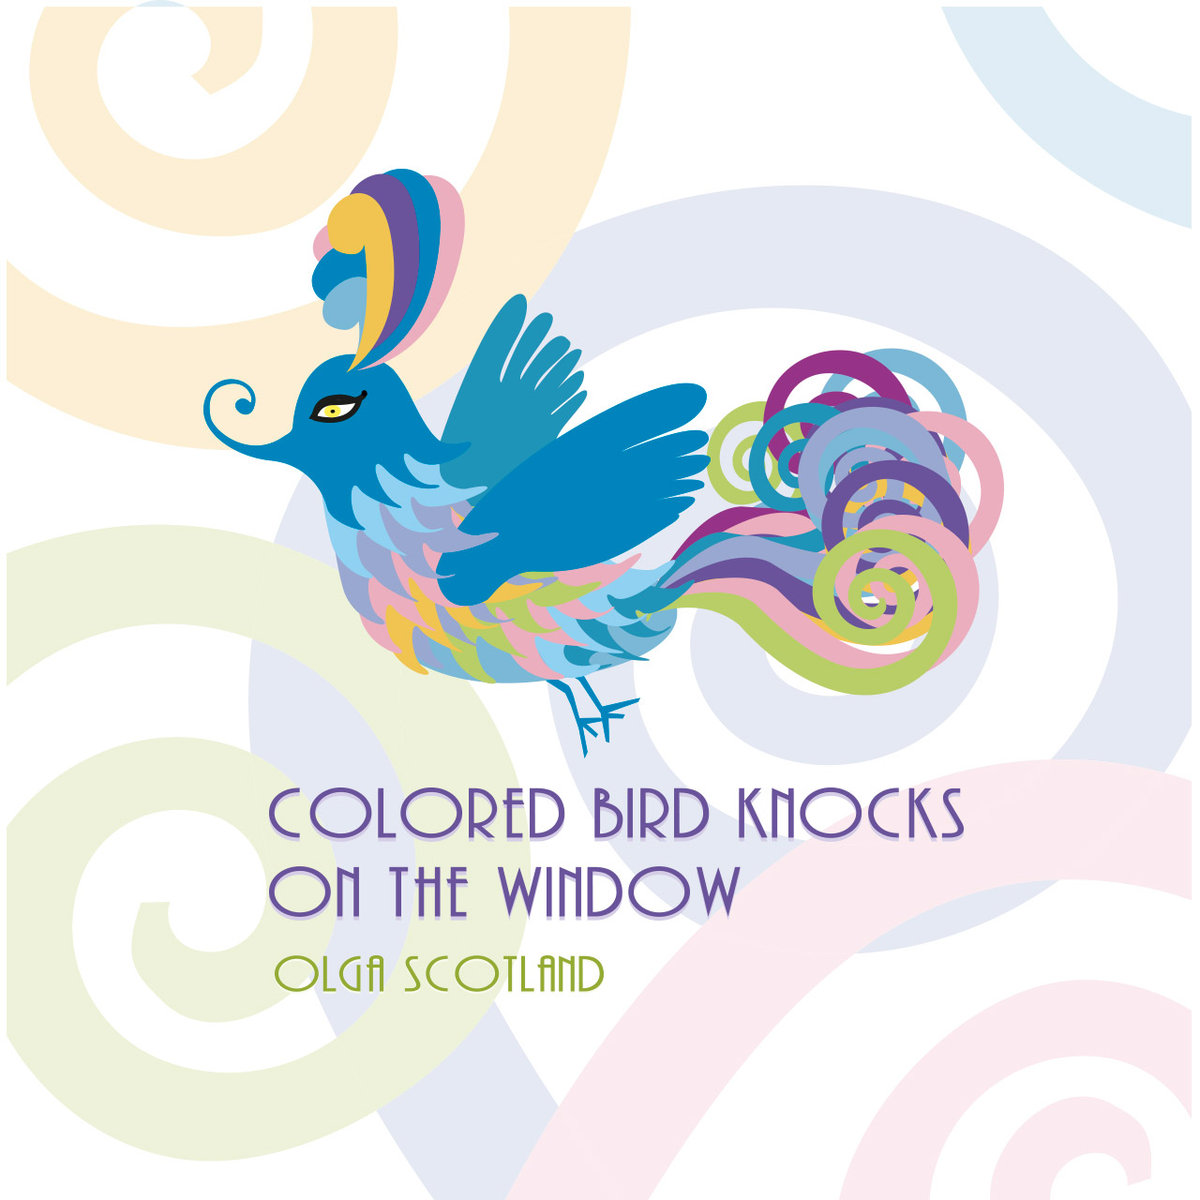 Olga Scotland - Colored Bird Knocks On The Window